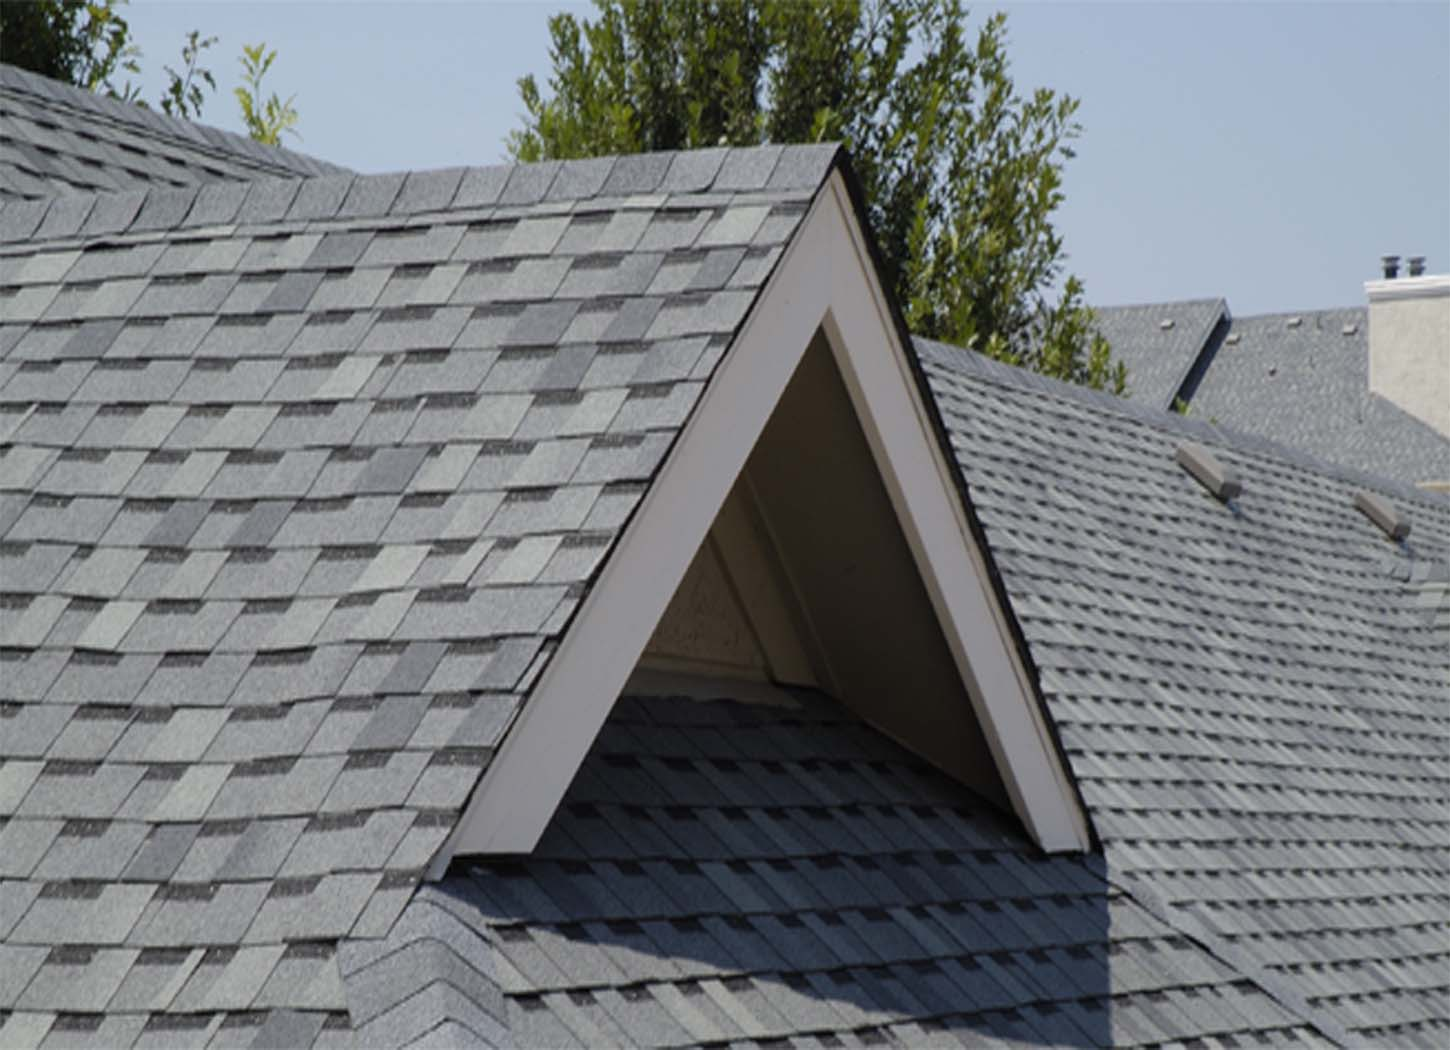 Grand Rapids Mi Roofing Contractors Roofer Roof Repair Renaissance Exteriors Frequently